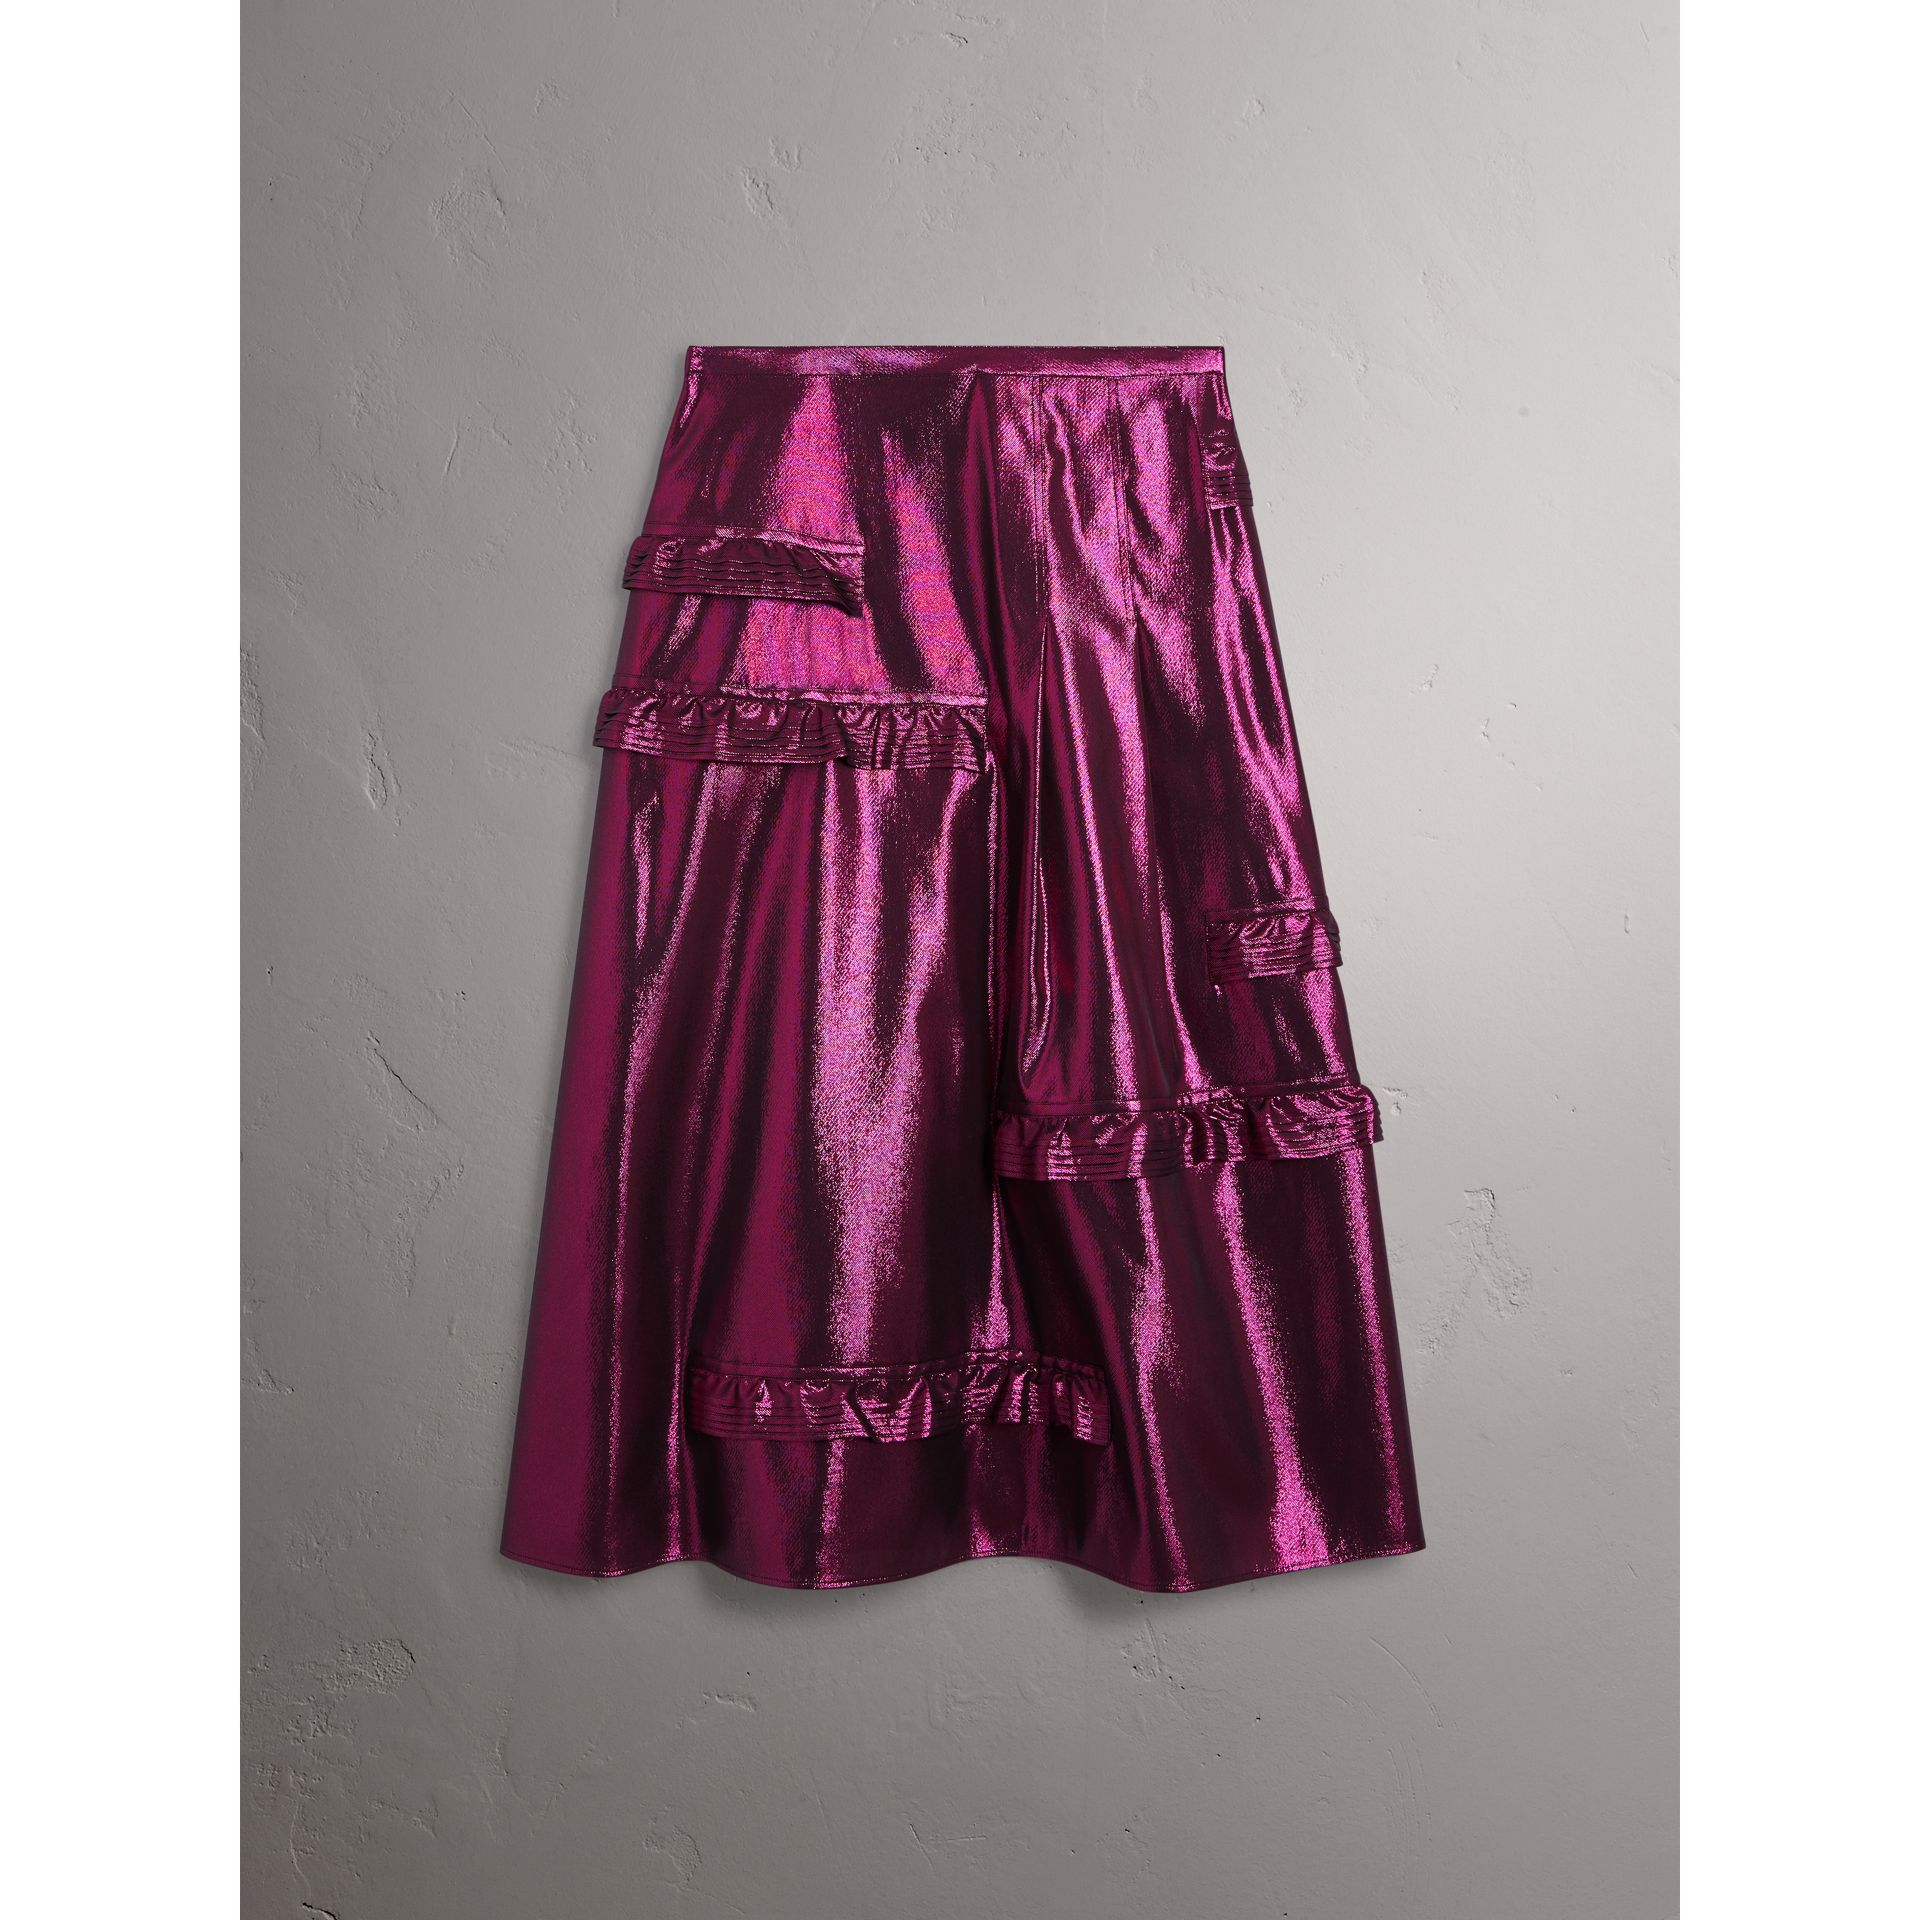 Ruffle Detail Lamé Skirt in Bright Fuchsia - Women | Burberry - gallery image 3